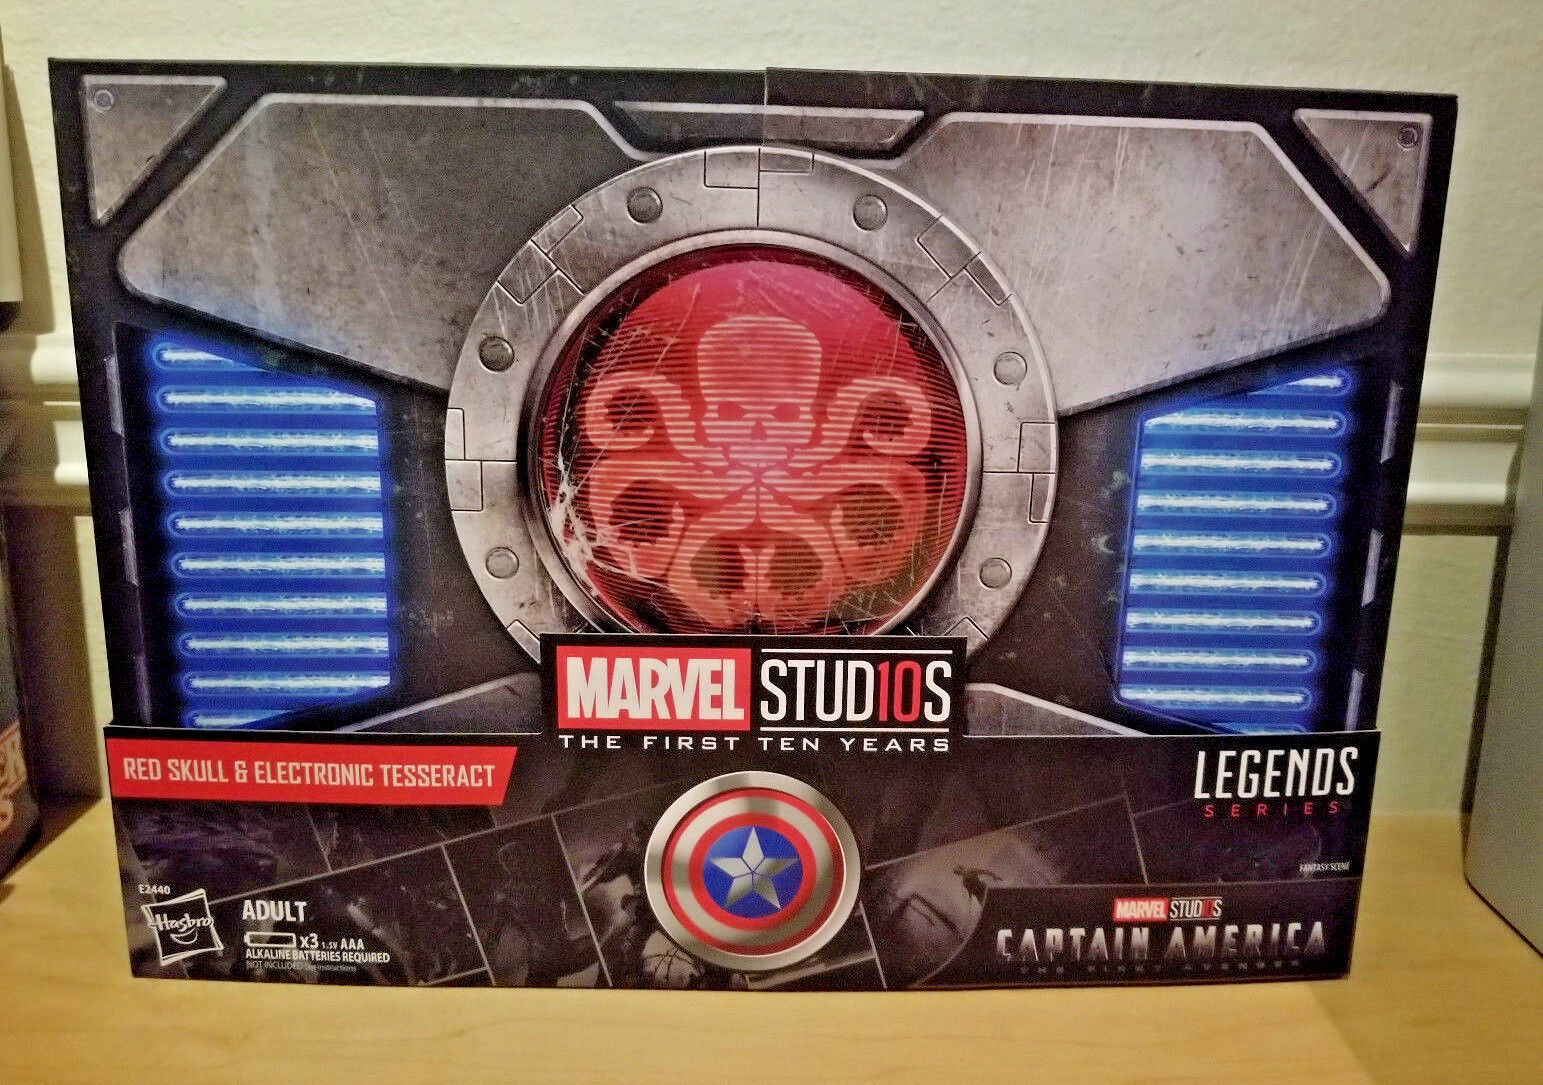 SDCC 2018 EXCLUSIVE HASBRO MARVEL LEGENDS RED SKULL & ELECTRONIC TESSERACT SET